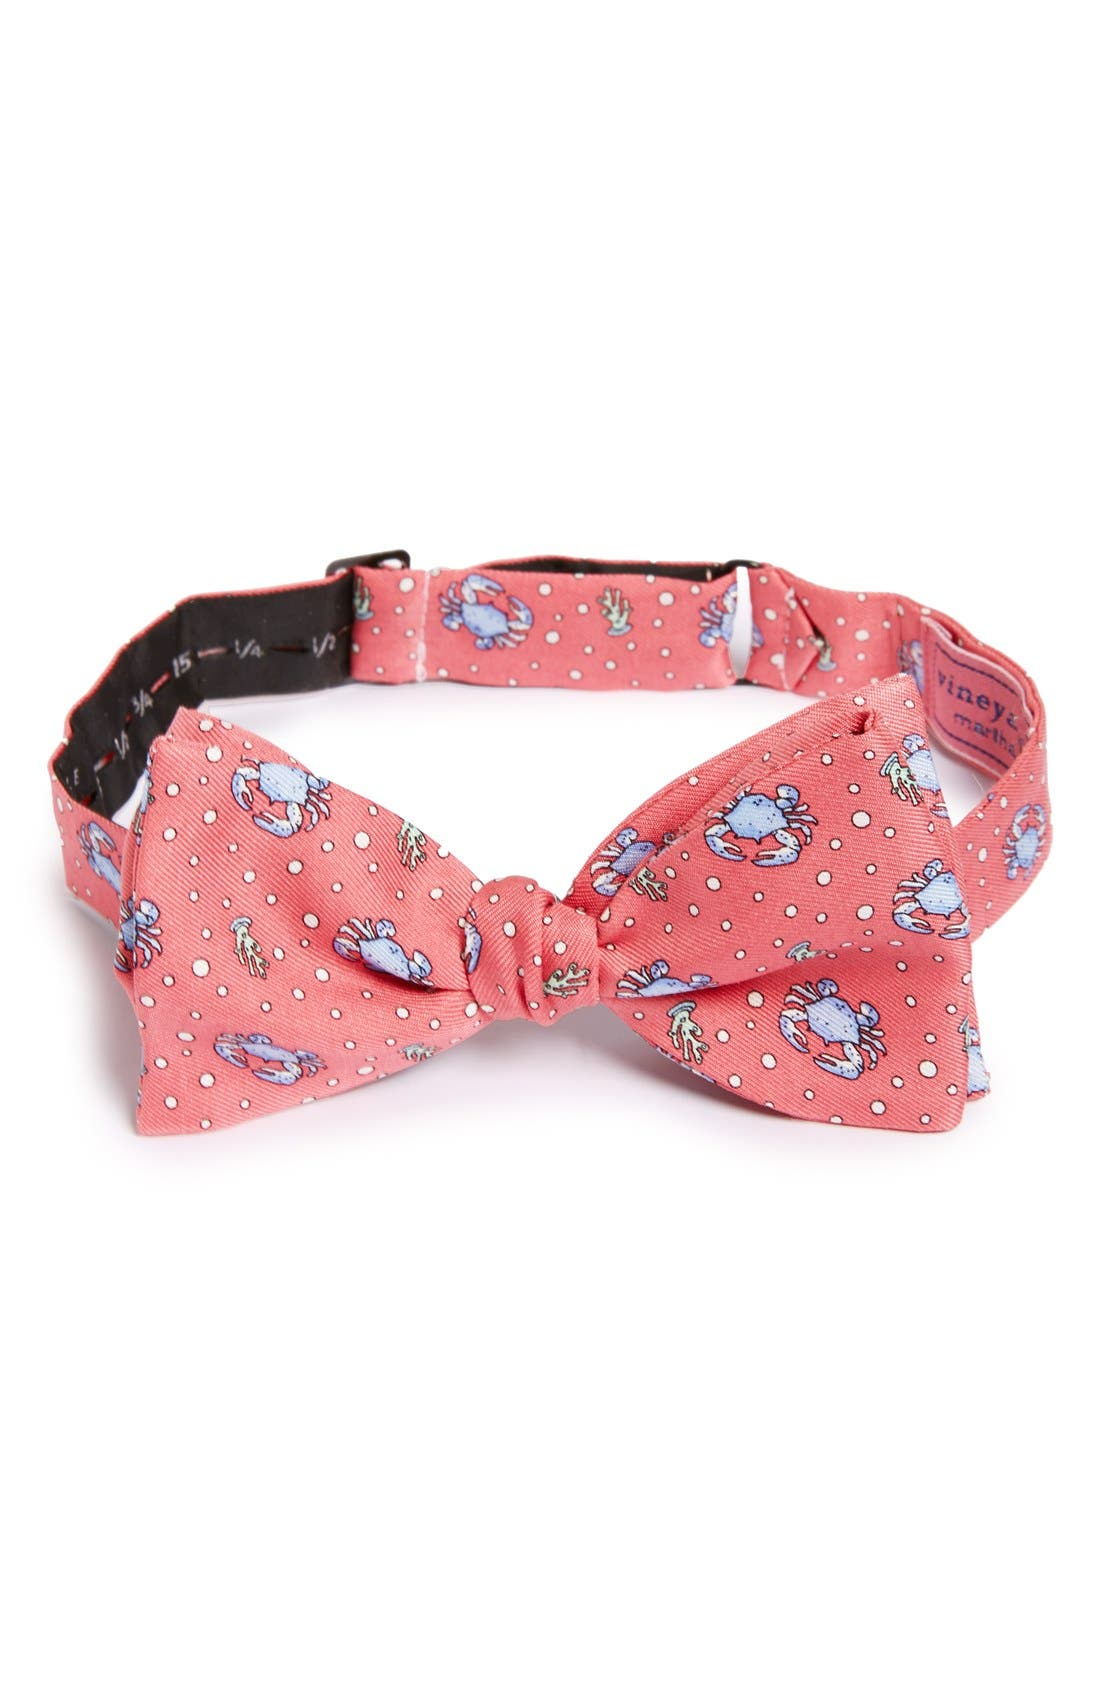 Crab Silk Bow Tie,                             Main thumbnail 1, color,                             Raspberry